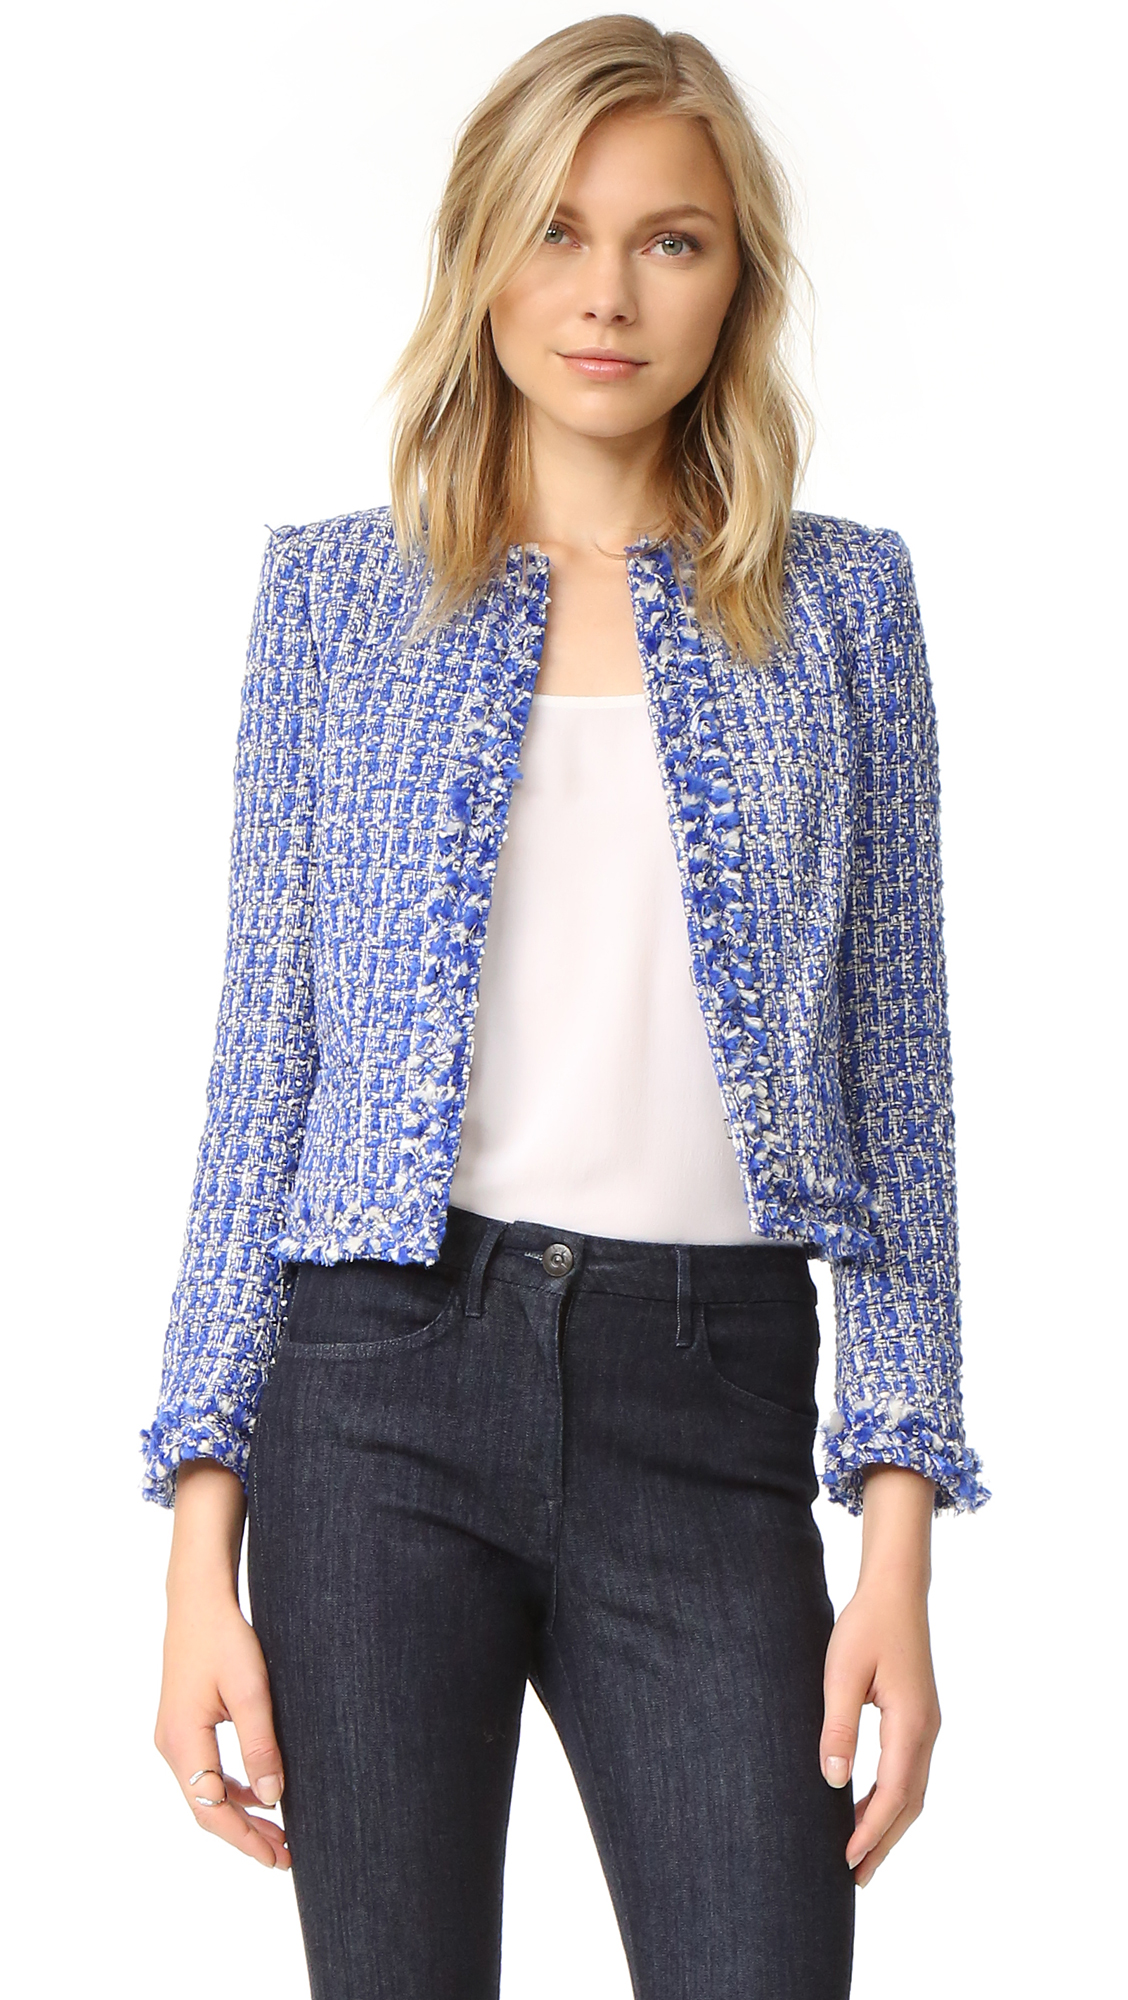 Alice + Olivia Kidman Frayed Hem Box Jacket - Cobalt Multi at Shopbop